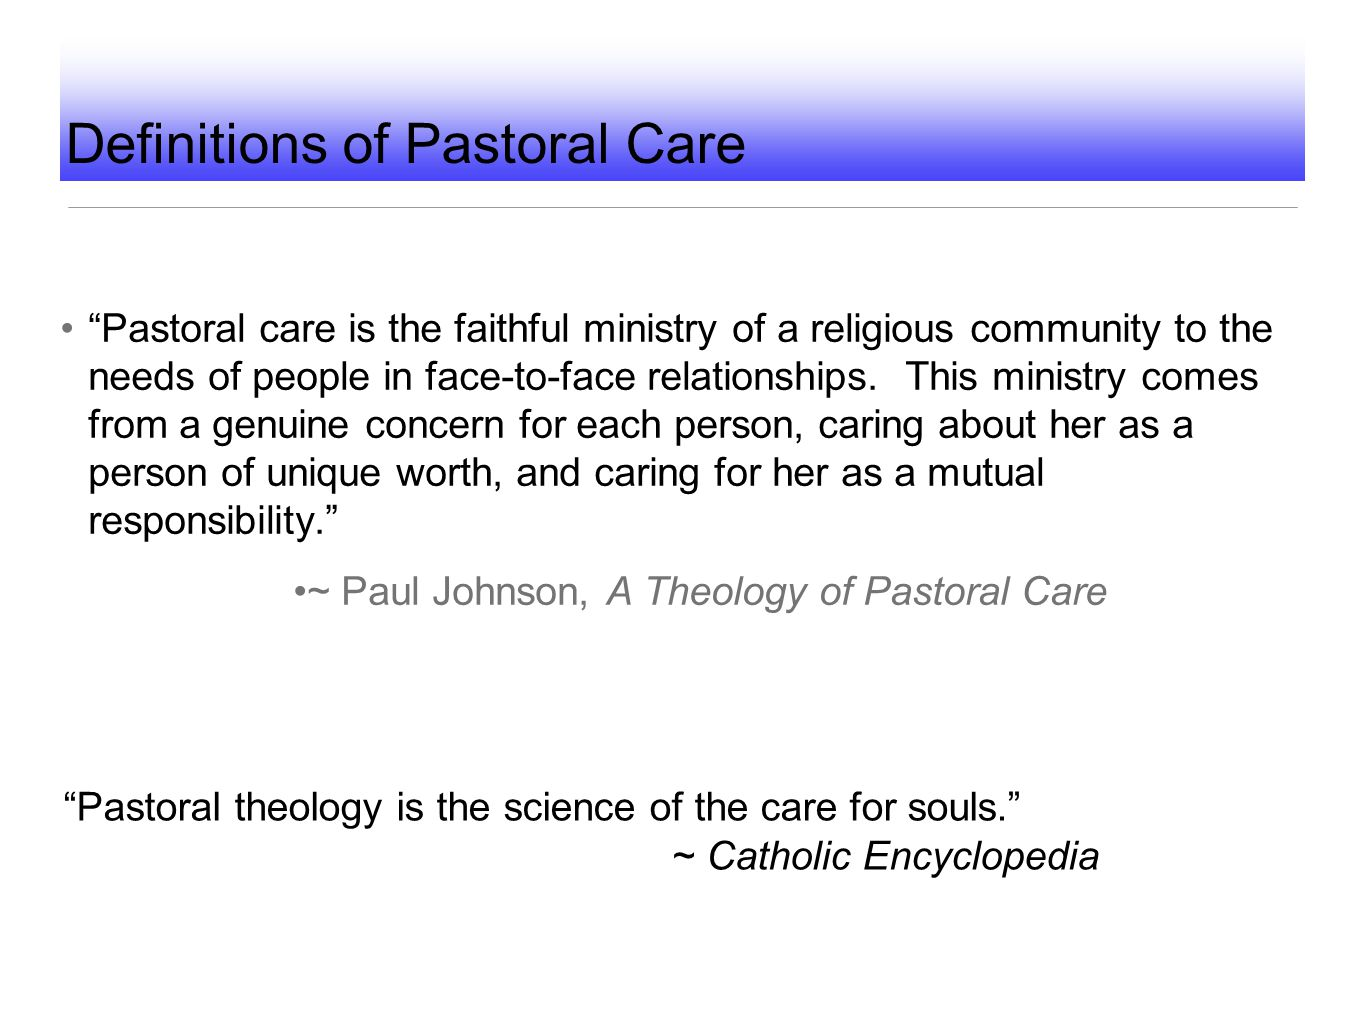 """Pastoral care is the faithful ministry of a religious community to the needs of people in face-to-face relationships. This ministry comes from a genu"